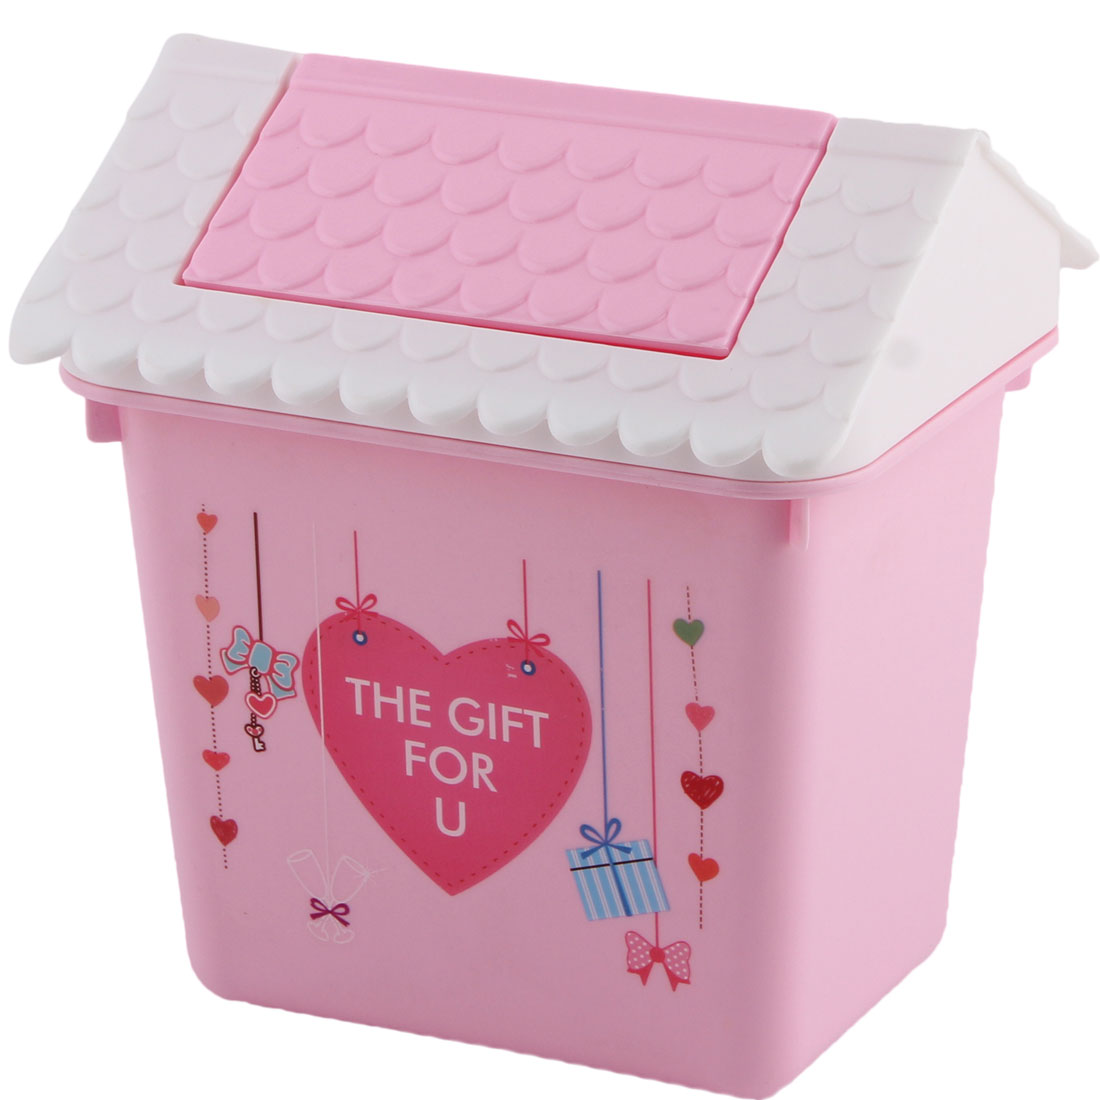 Home Office Plastic House Shaped Heart Pattern Trash Garbage Rubbish Bin Pink